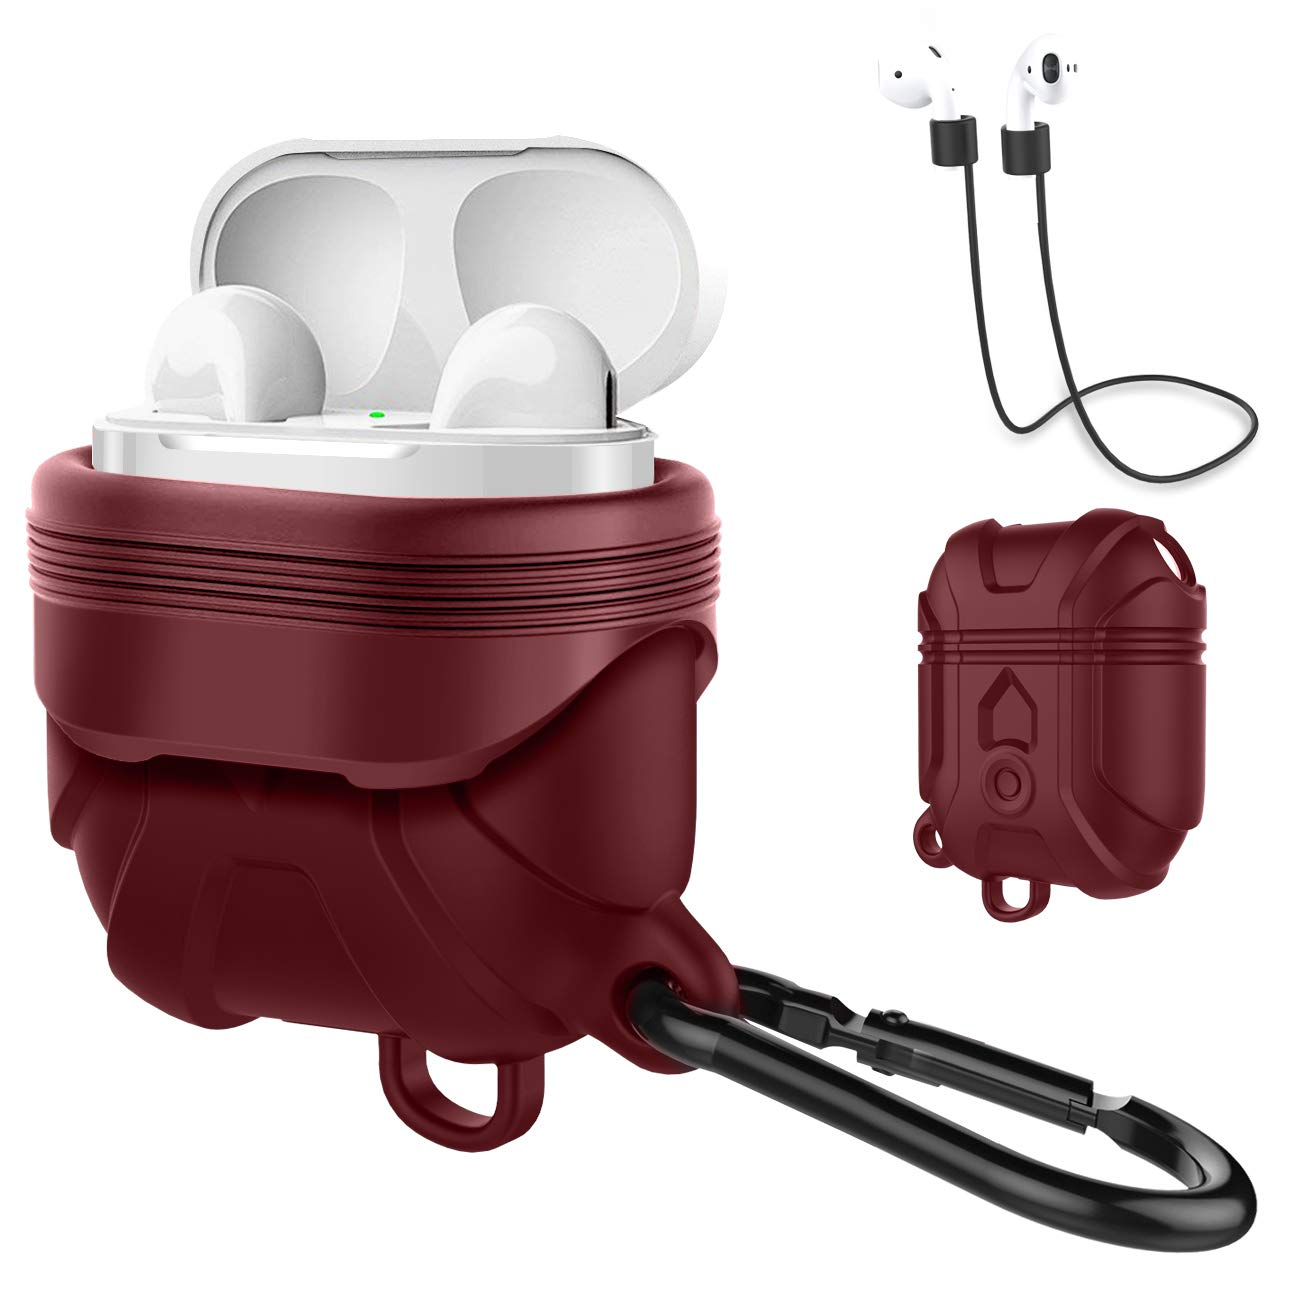 AirPod Case, BENTOBEN Airpods Accessories Kits Protective